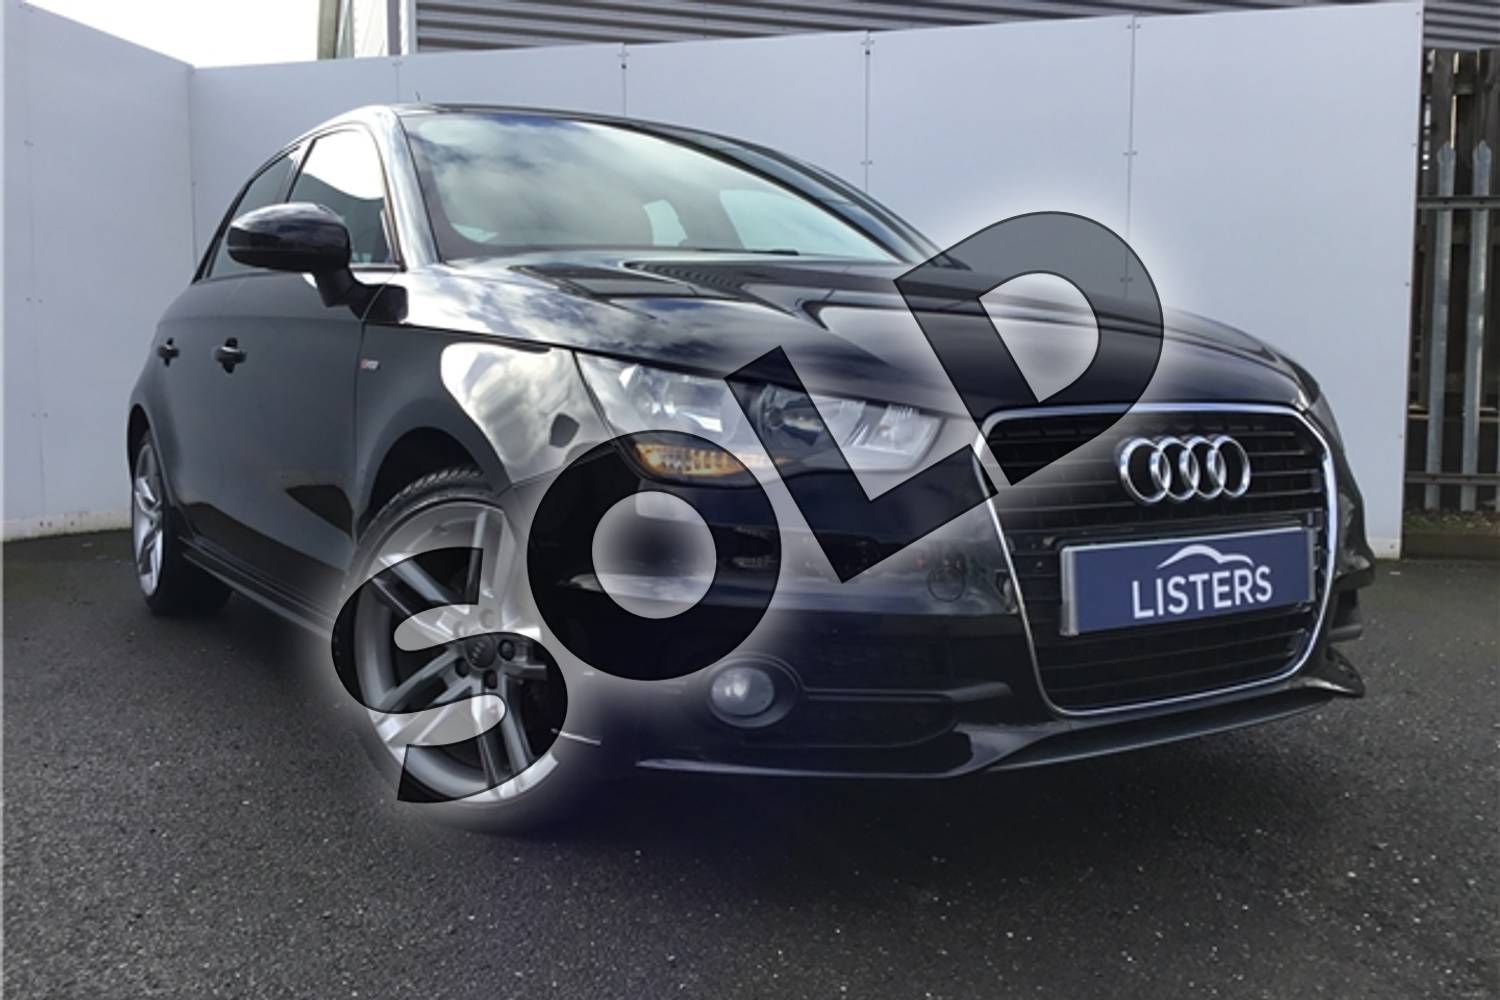 2013 Audi A1 Sportback 1.4 TFSI S Line 5dr in Metallic - Mythos black at Listers U Solihull